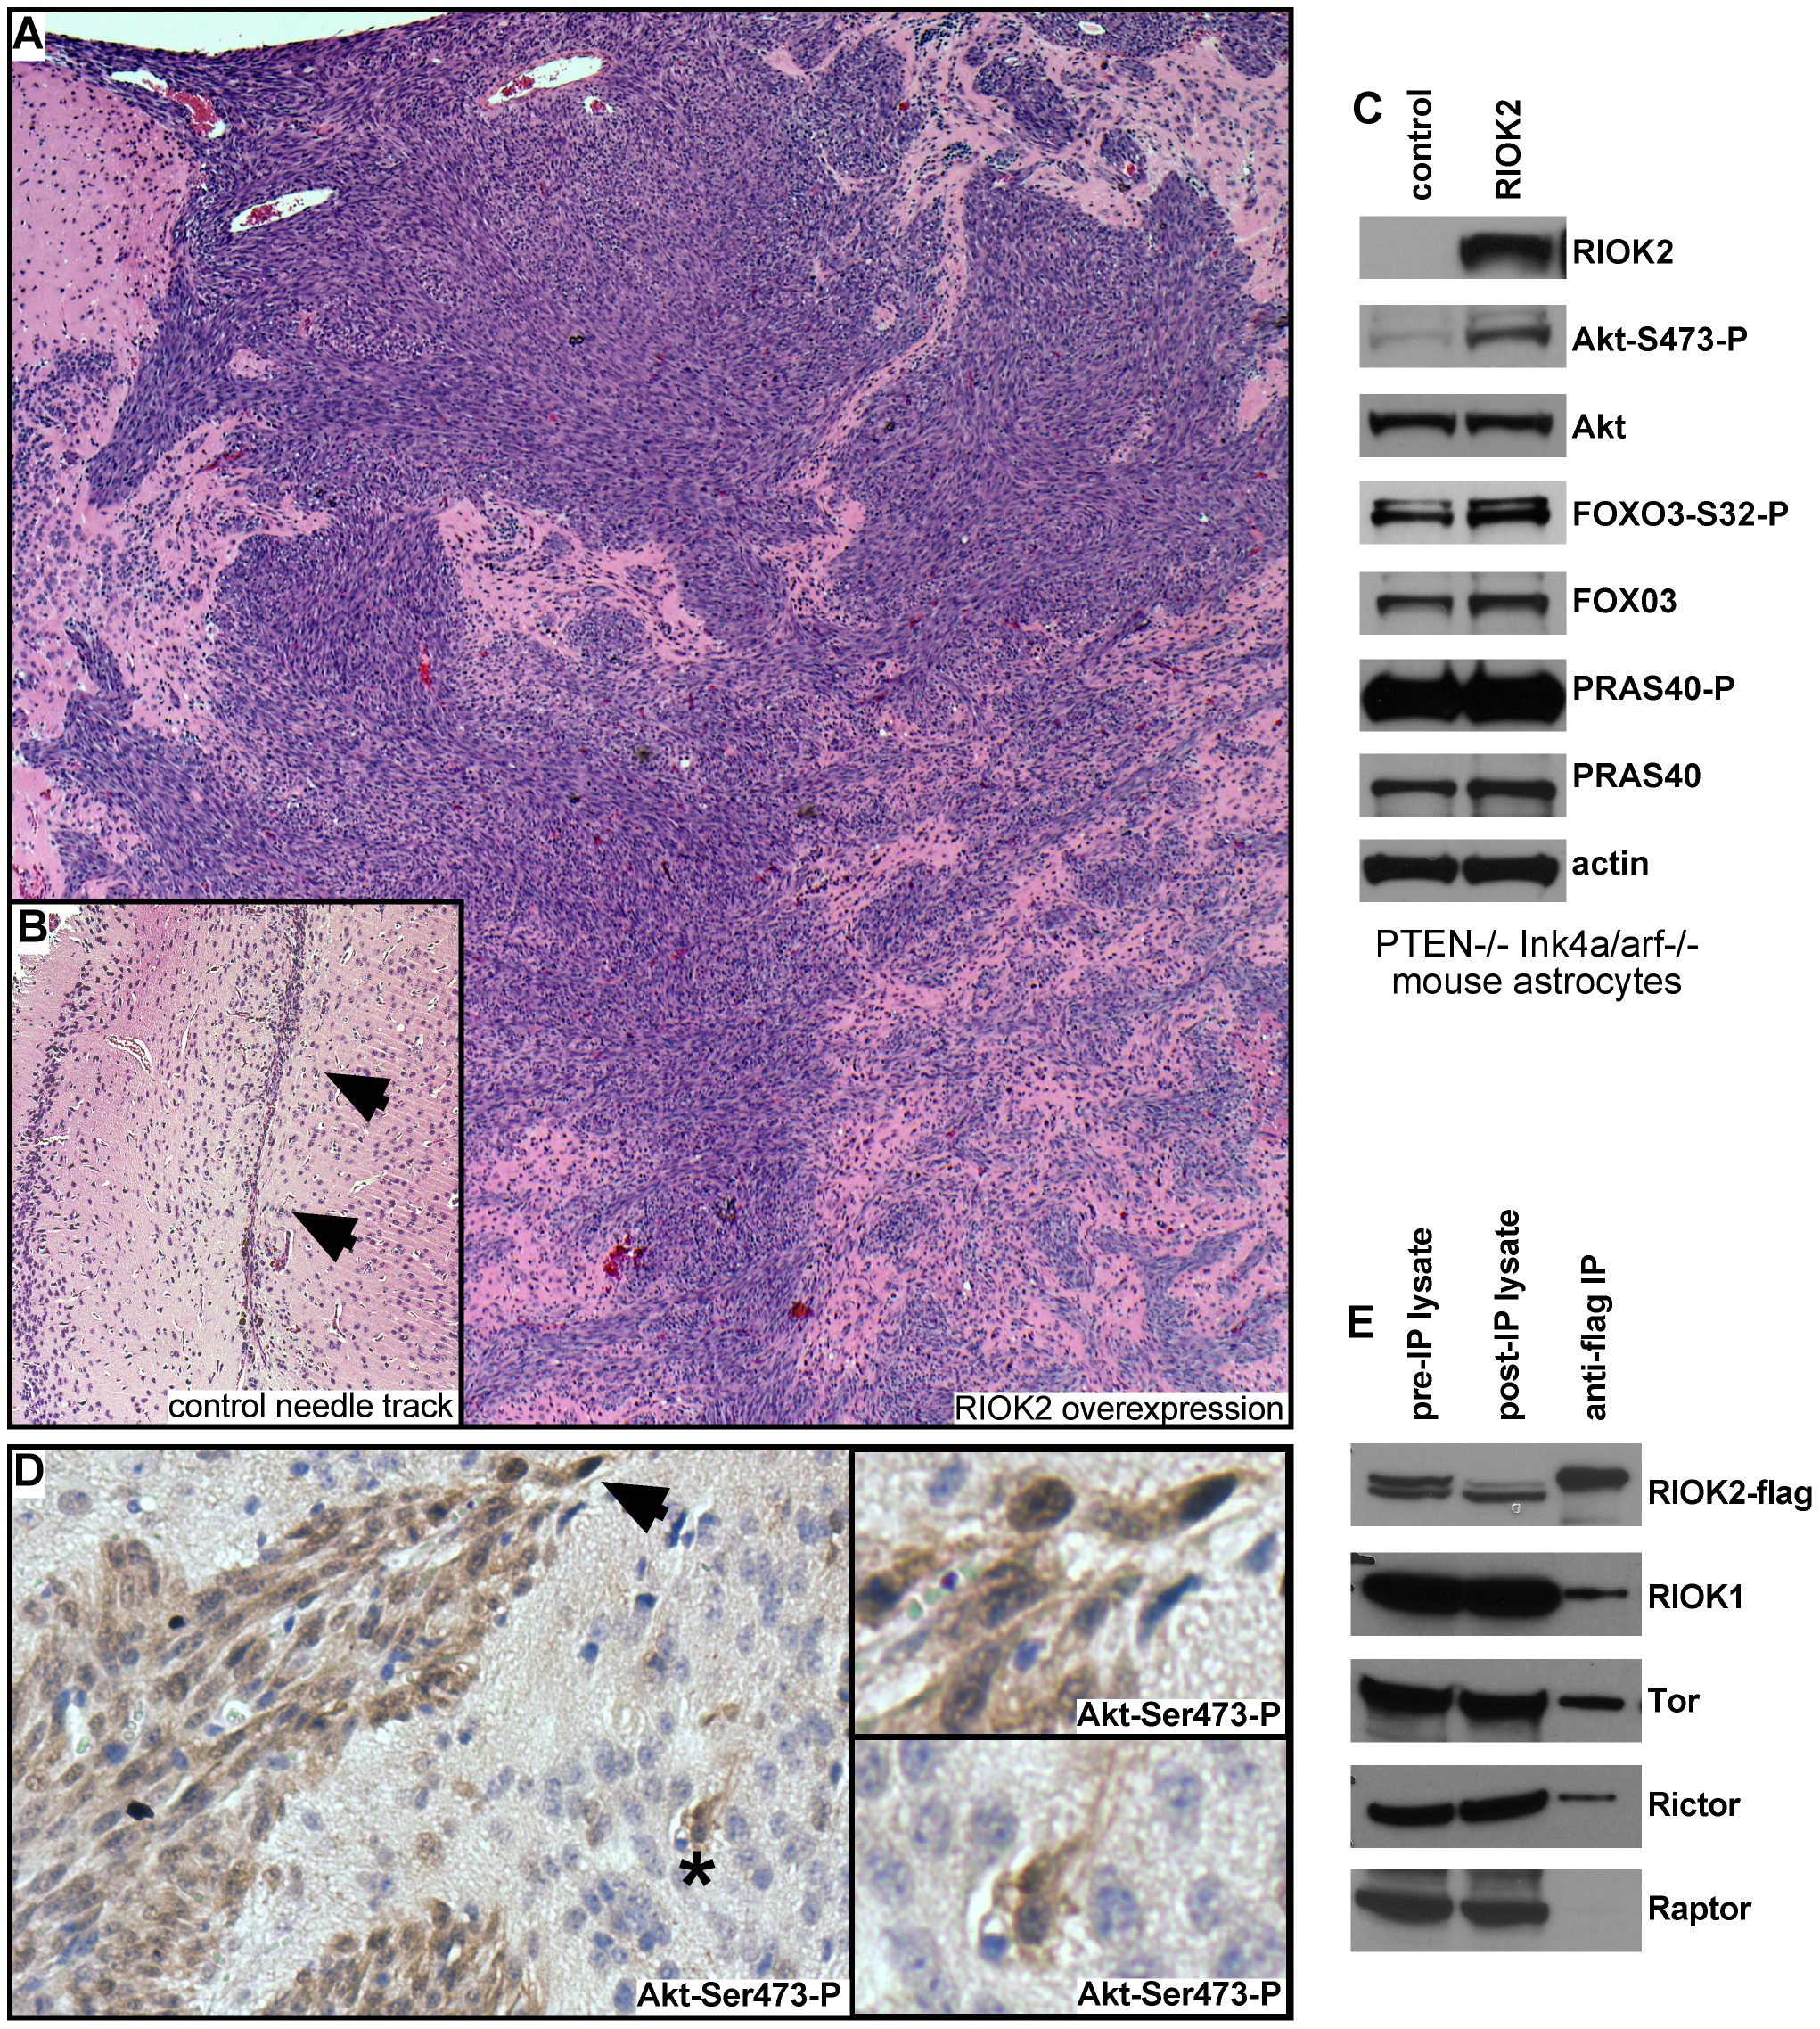 Overexpression of RIOK2 in murine astrocytes promotes tumorigenesis and TORC2-Akt signaling.